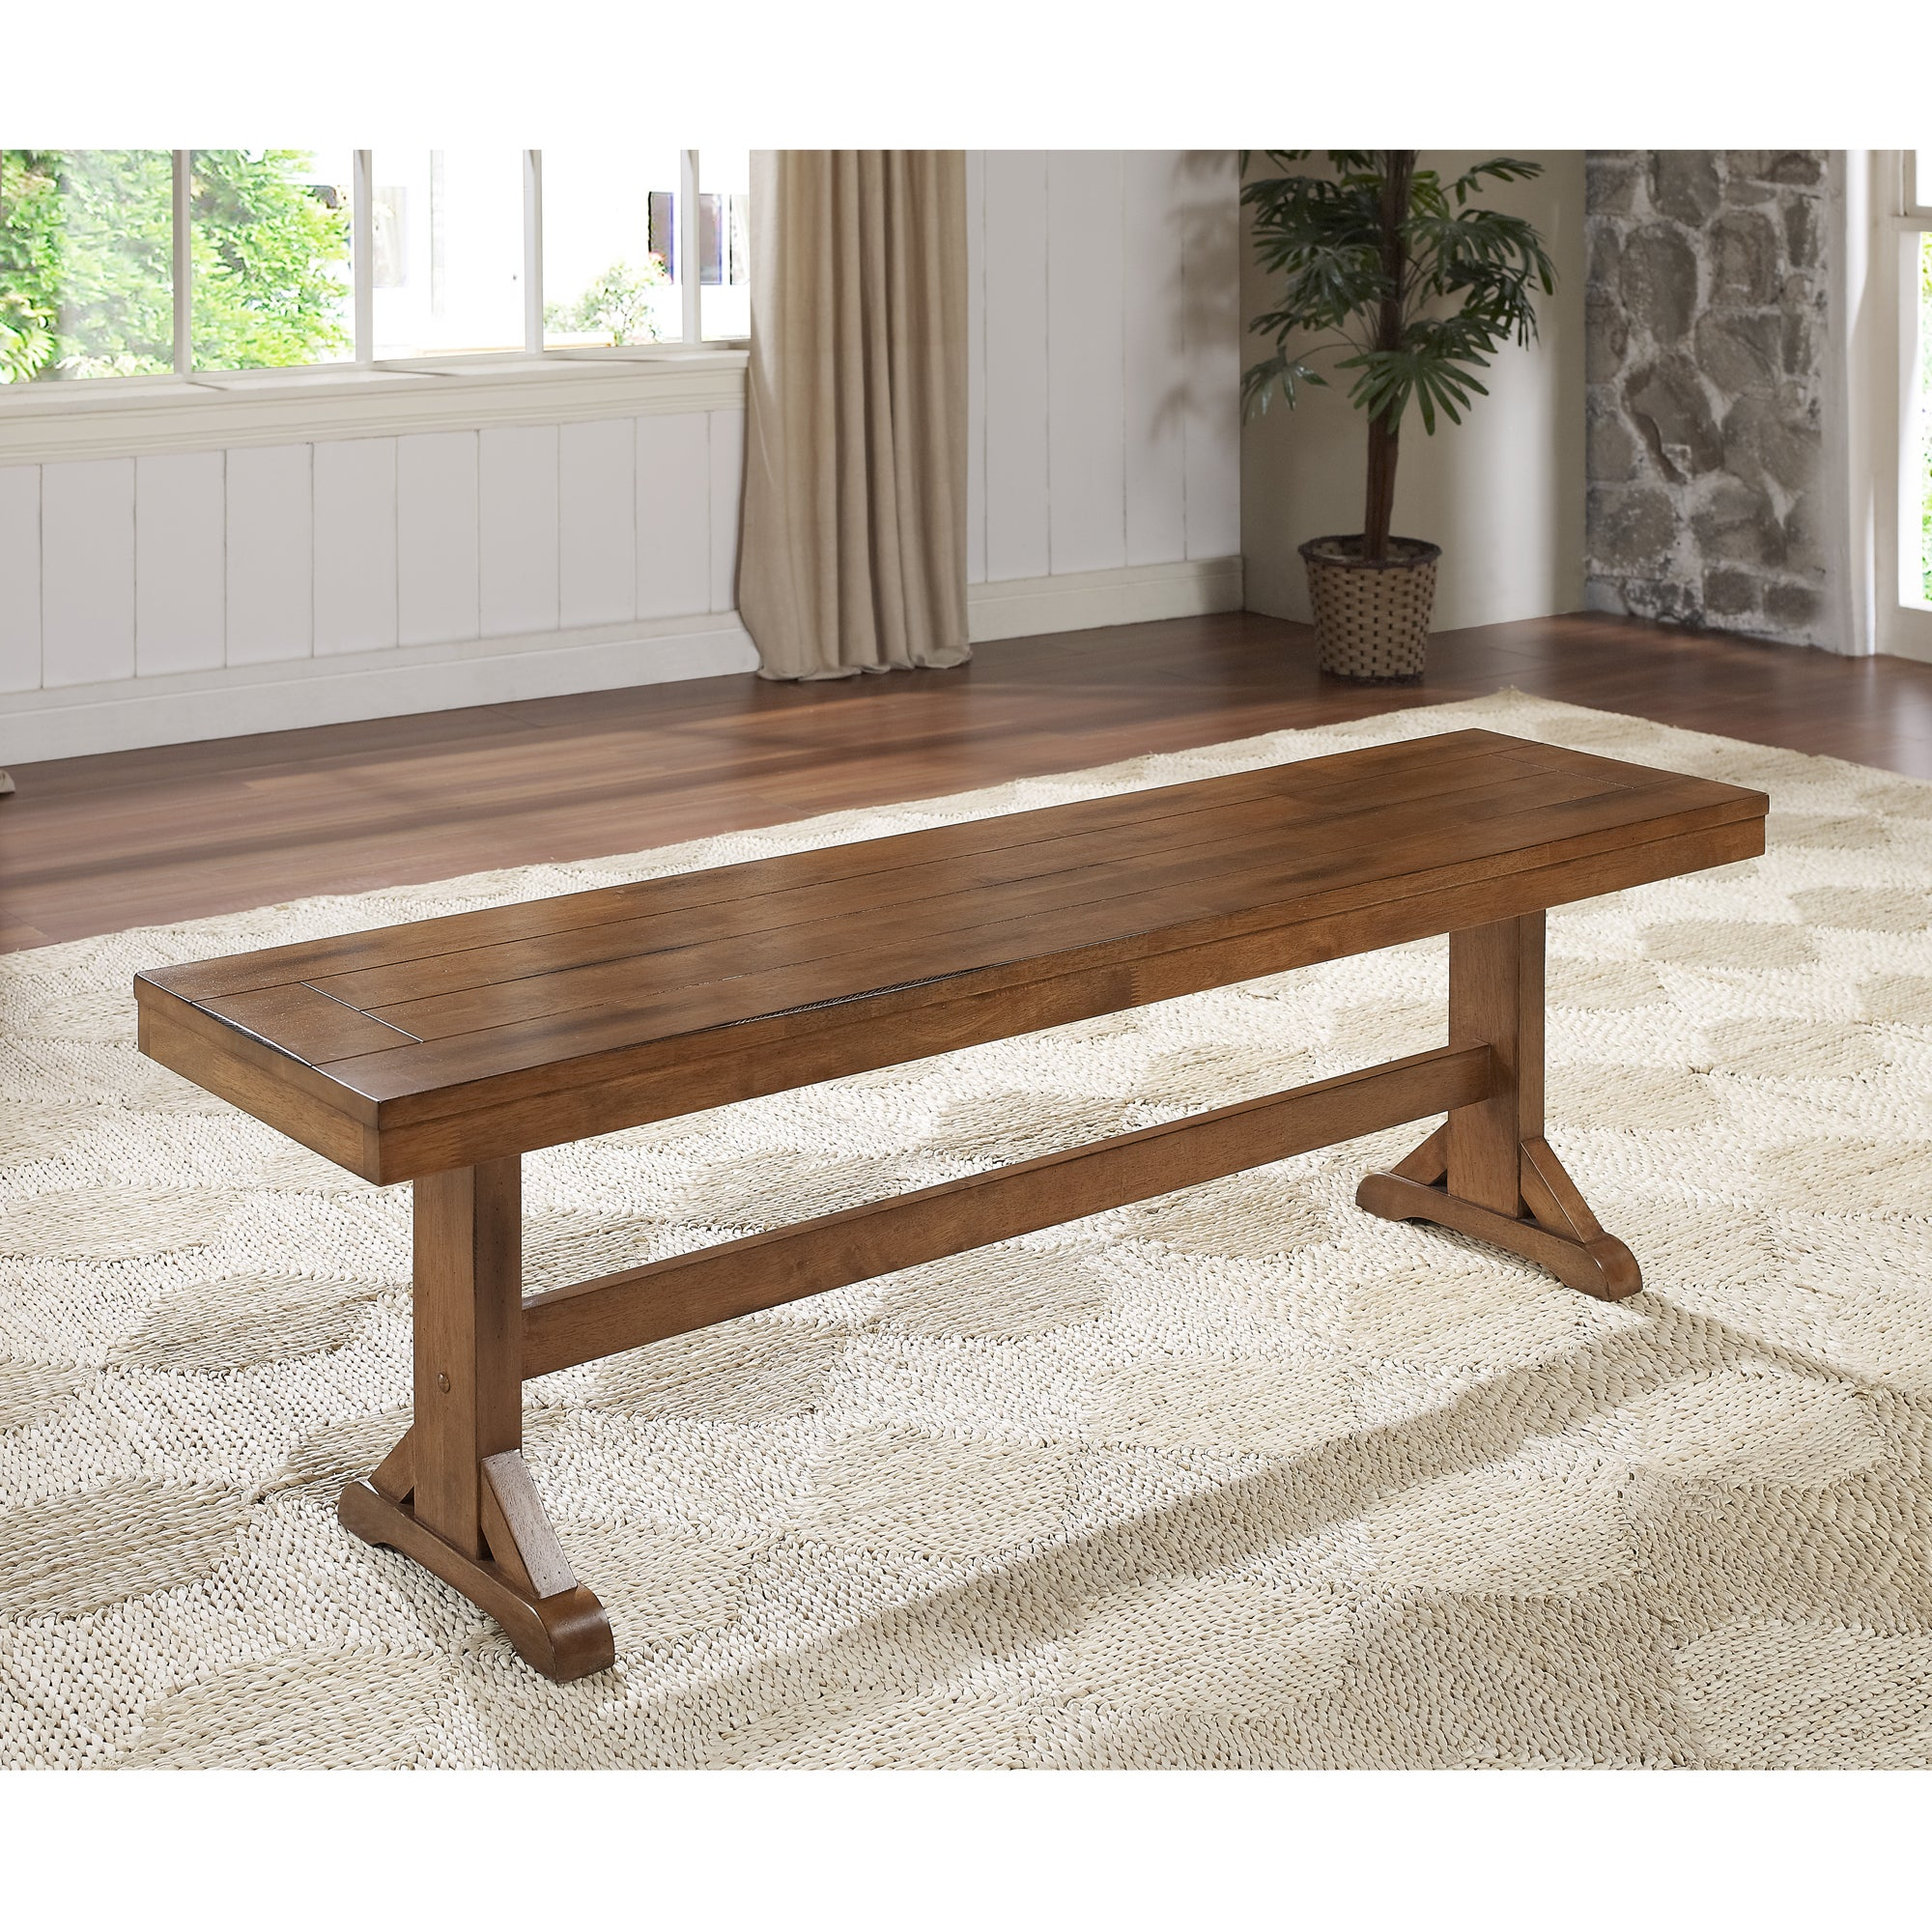 Walker Edison Farmhouse Chic Antique Brown Wood Dining Be...